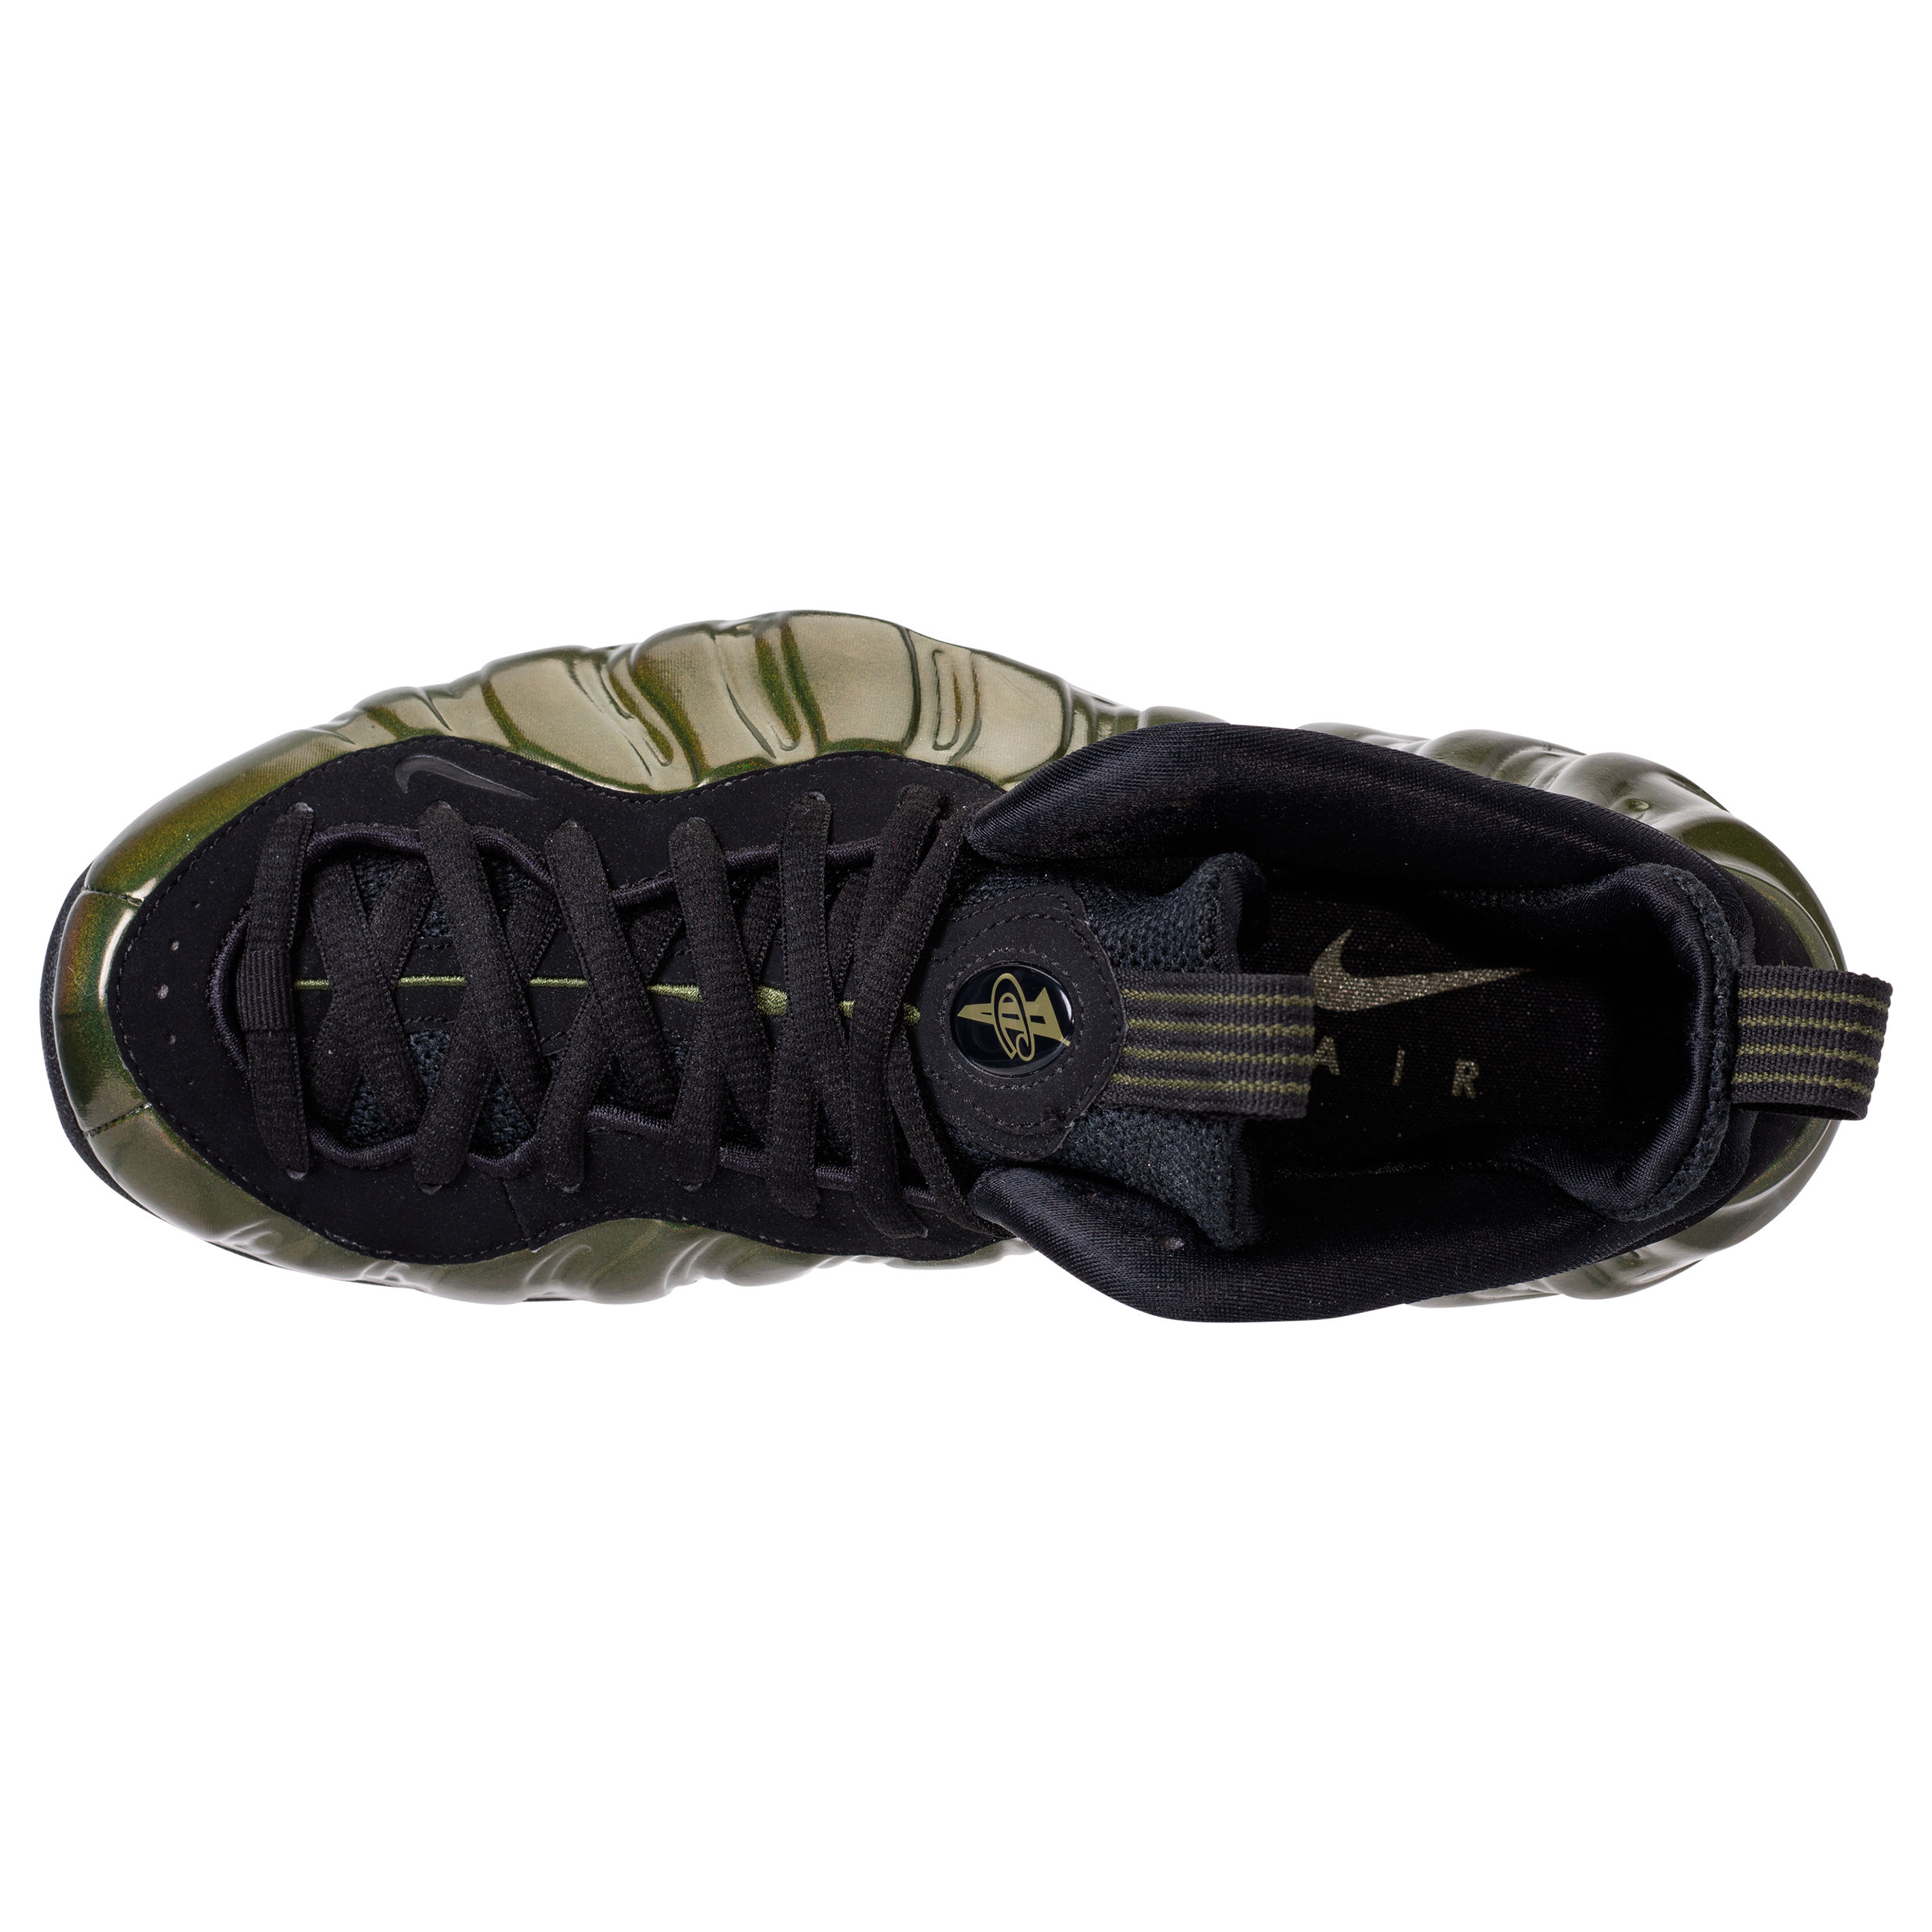 Nike Air Foamposite One USA AA3963102 Olympic Womens ...